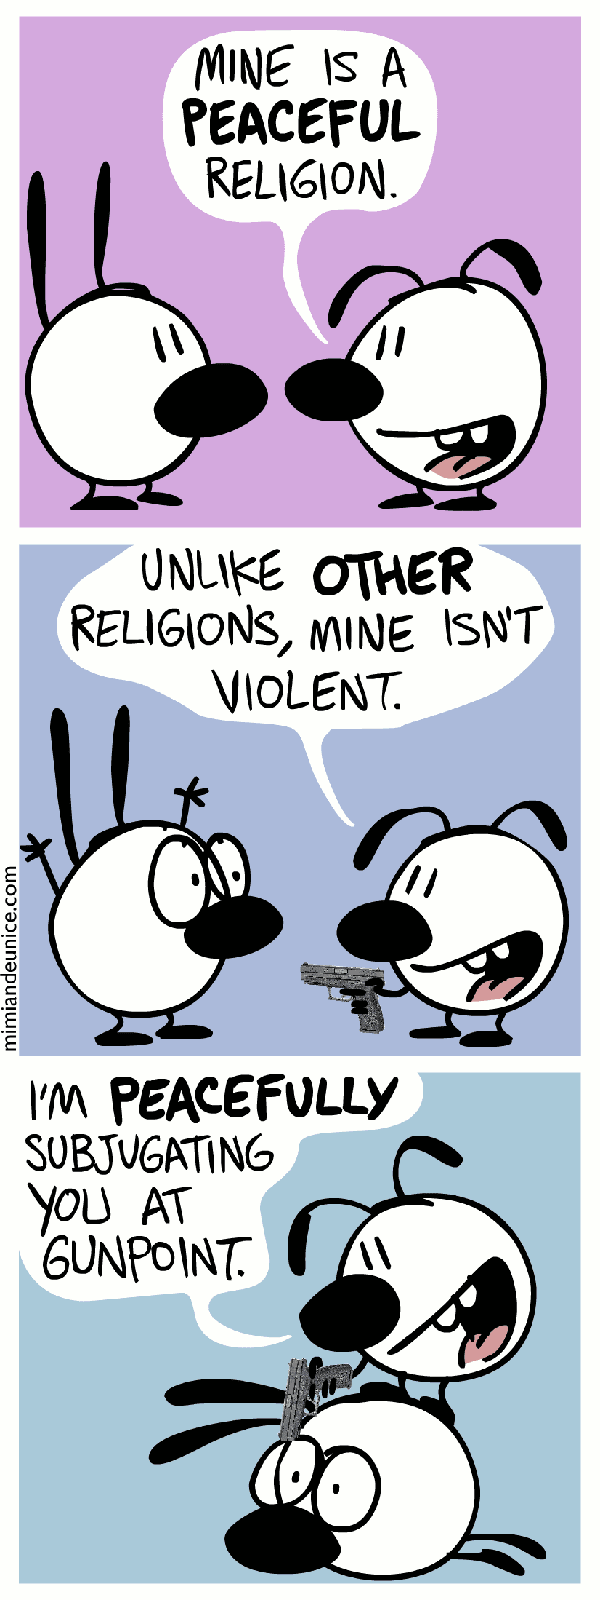 Mine is a PEACEFUL religion. Unlike OTHER religions, mine isn't violent. I'm PEACEFULLY subjugating you at gunpoint.